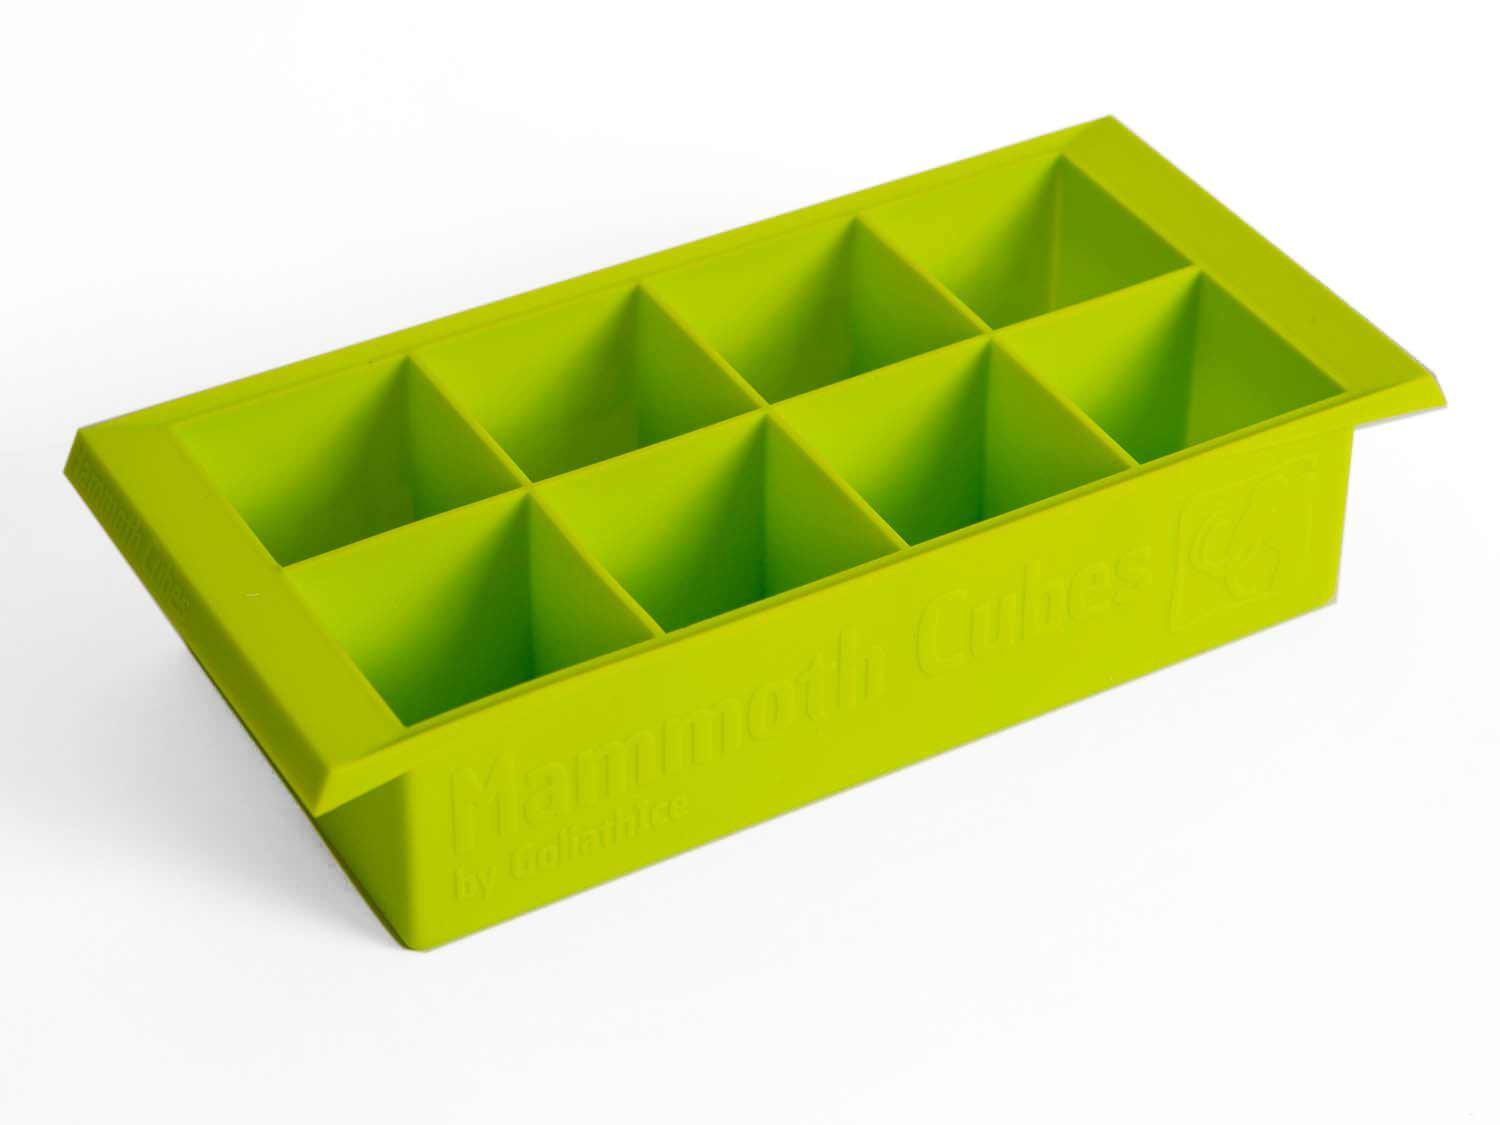 A green ice cube tray for large cubes